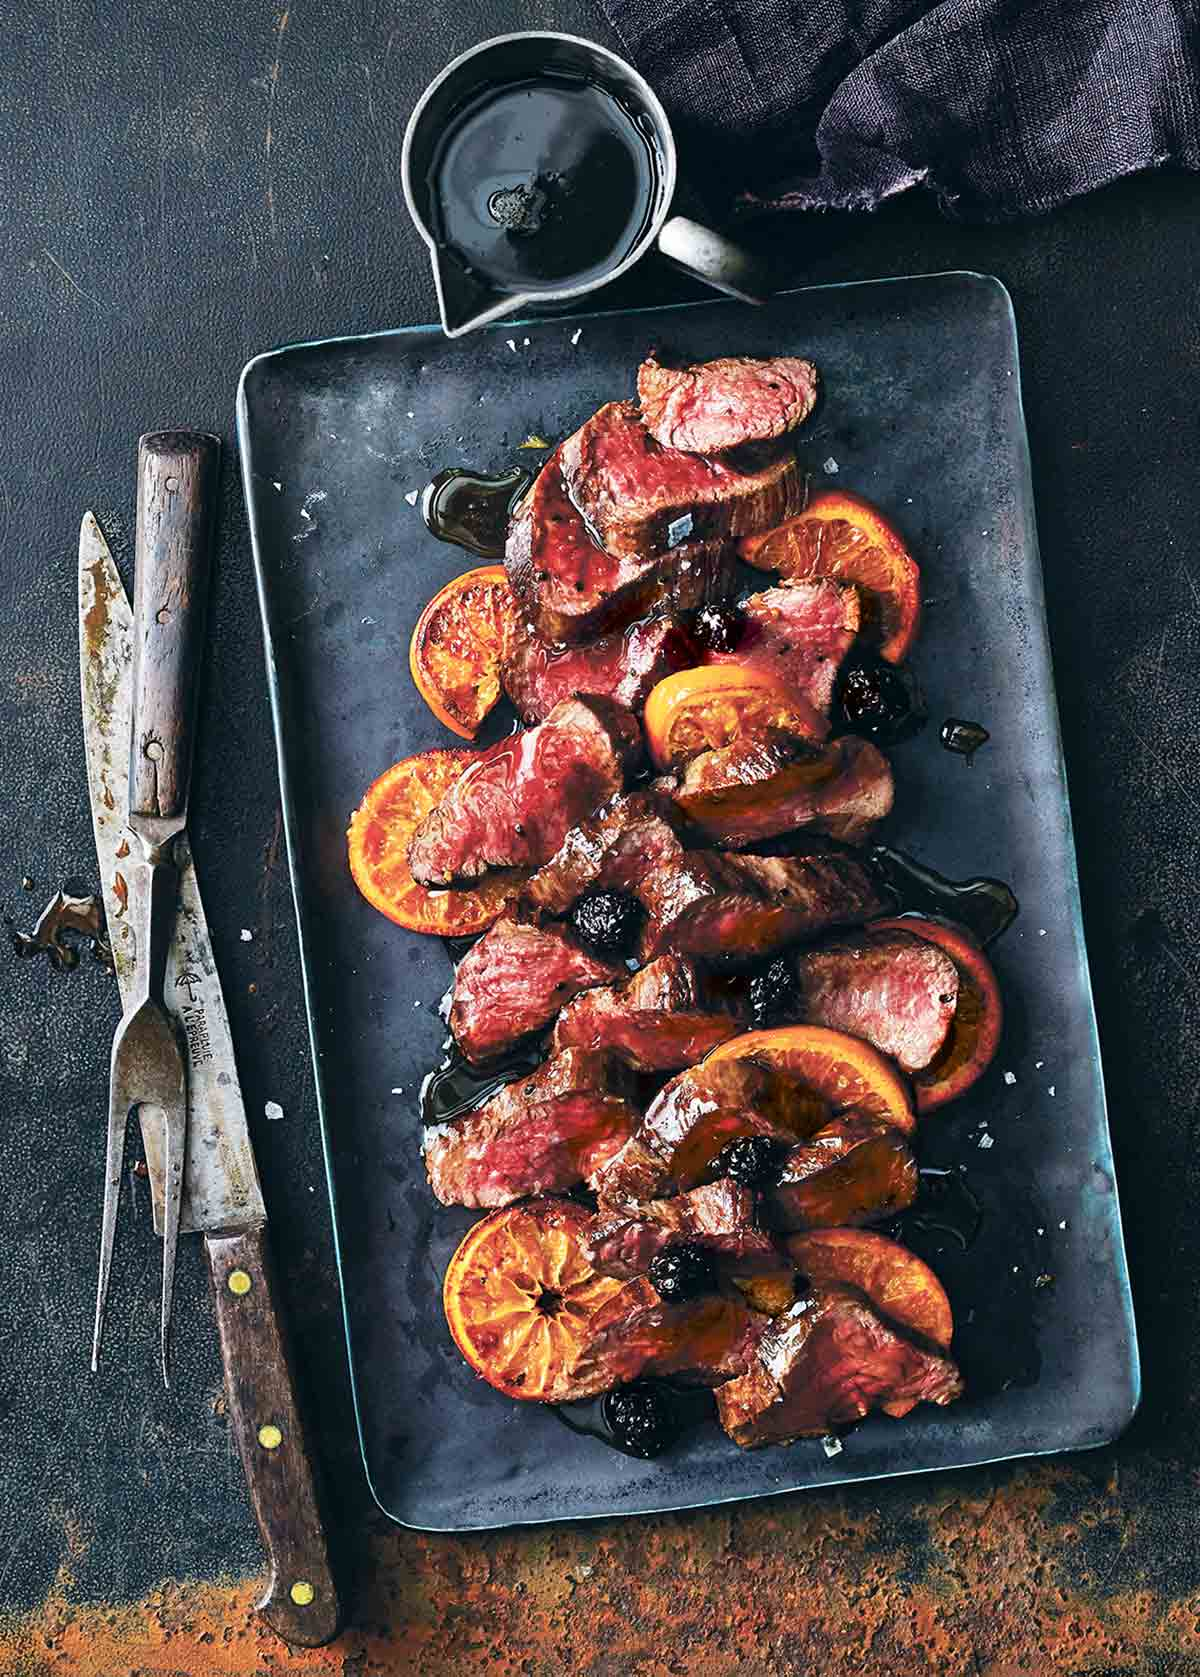 A black tray with sliced roasted venison with balsamic blackberry sauce and sliced oranges.